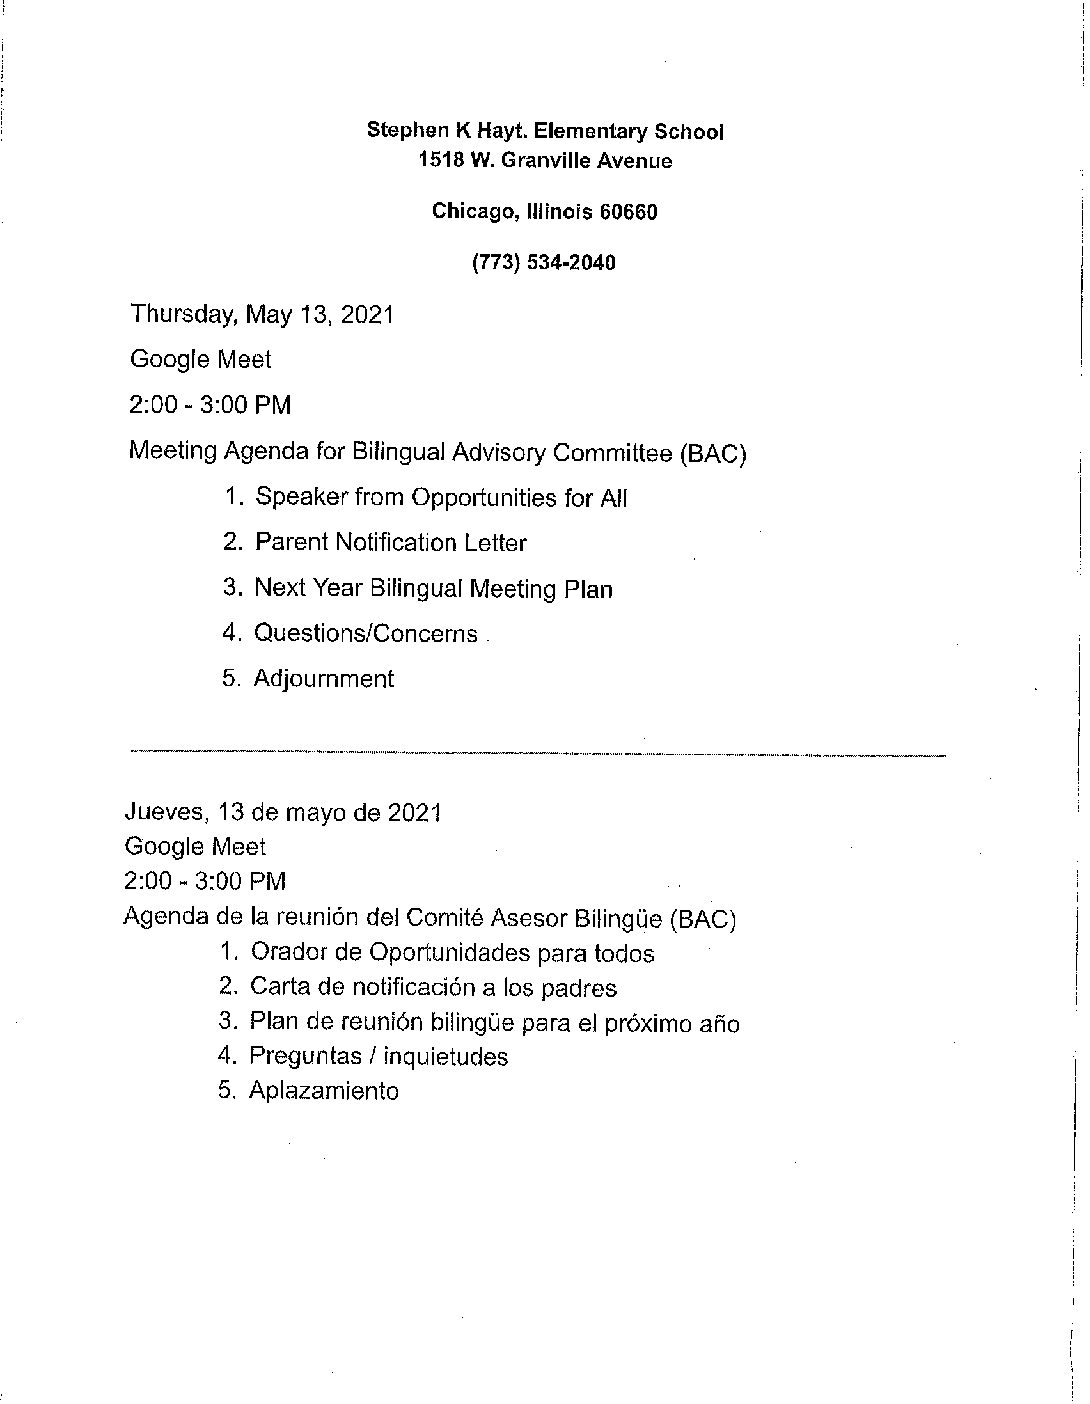 Bilingual Advisory Committee (BAC) google meeting will be held on Thursday, May 13, 2021, from 2:00 pm -3:00 pm